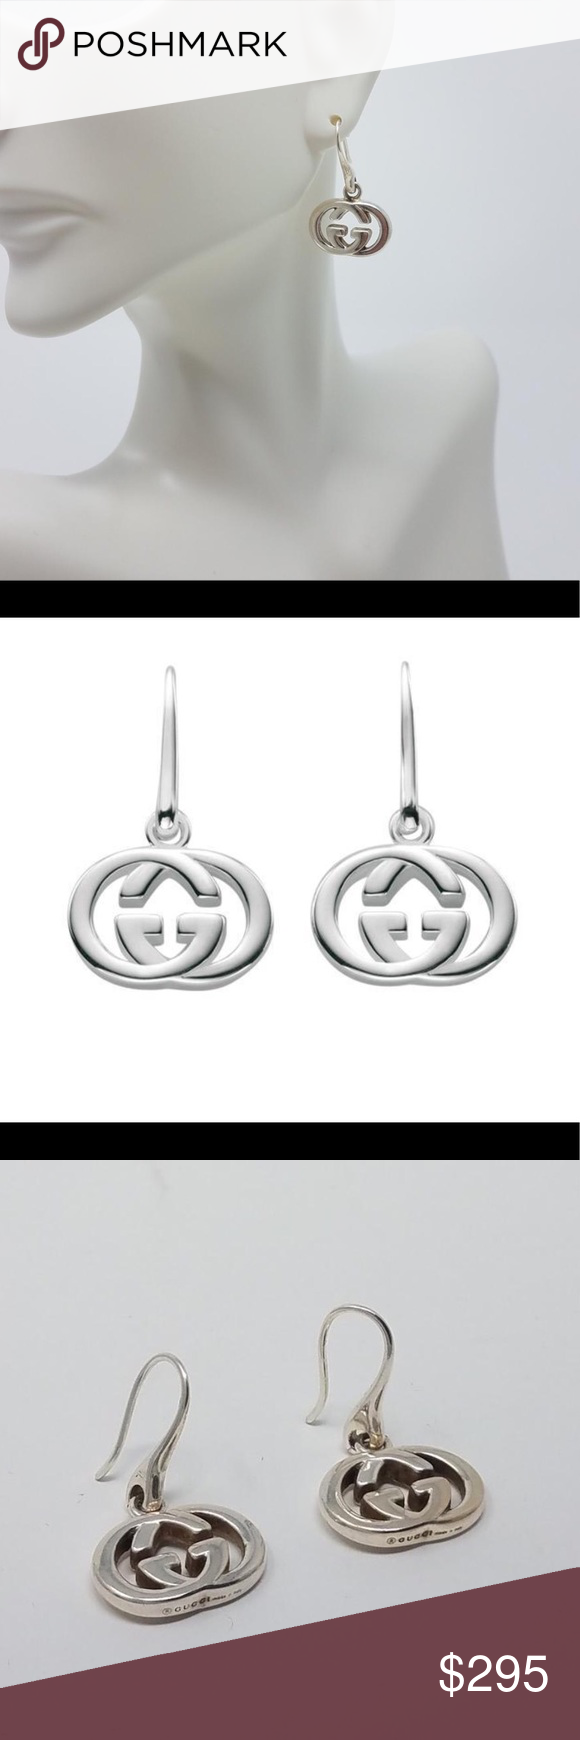 3630c54925e Women s Gucci sterling silver GG drop earrings Women s Gucci sterling silver  interlocking GG drop earrings. Worn twice. In brand new